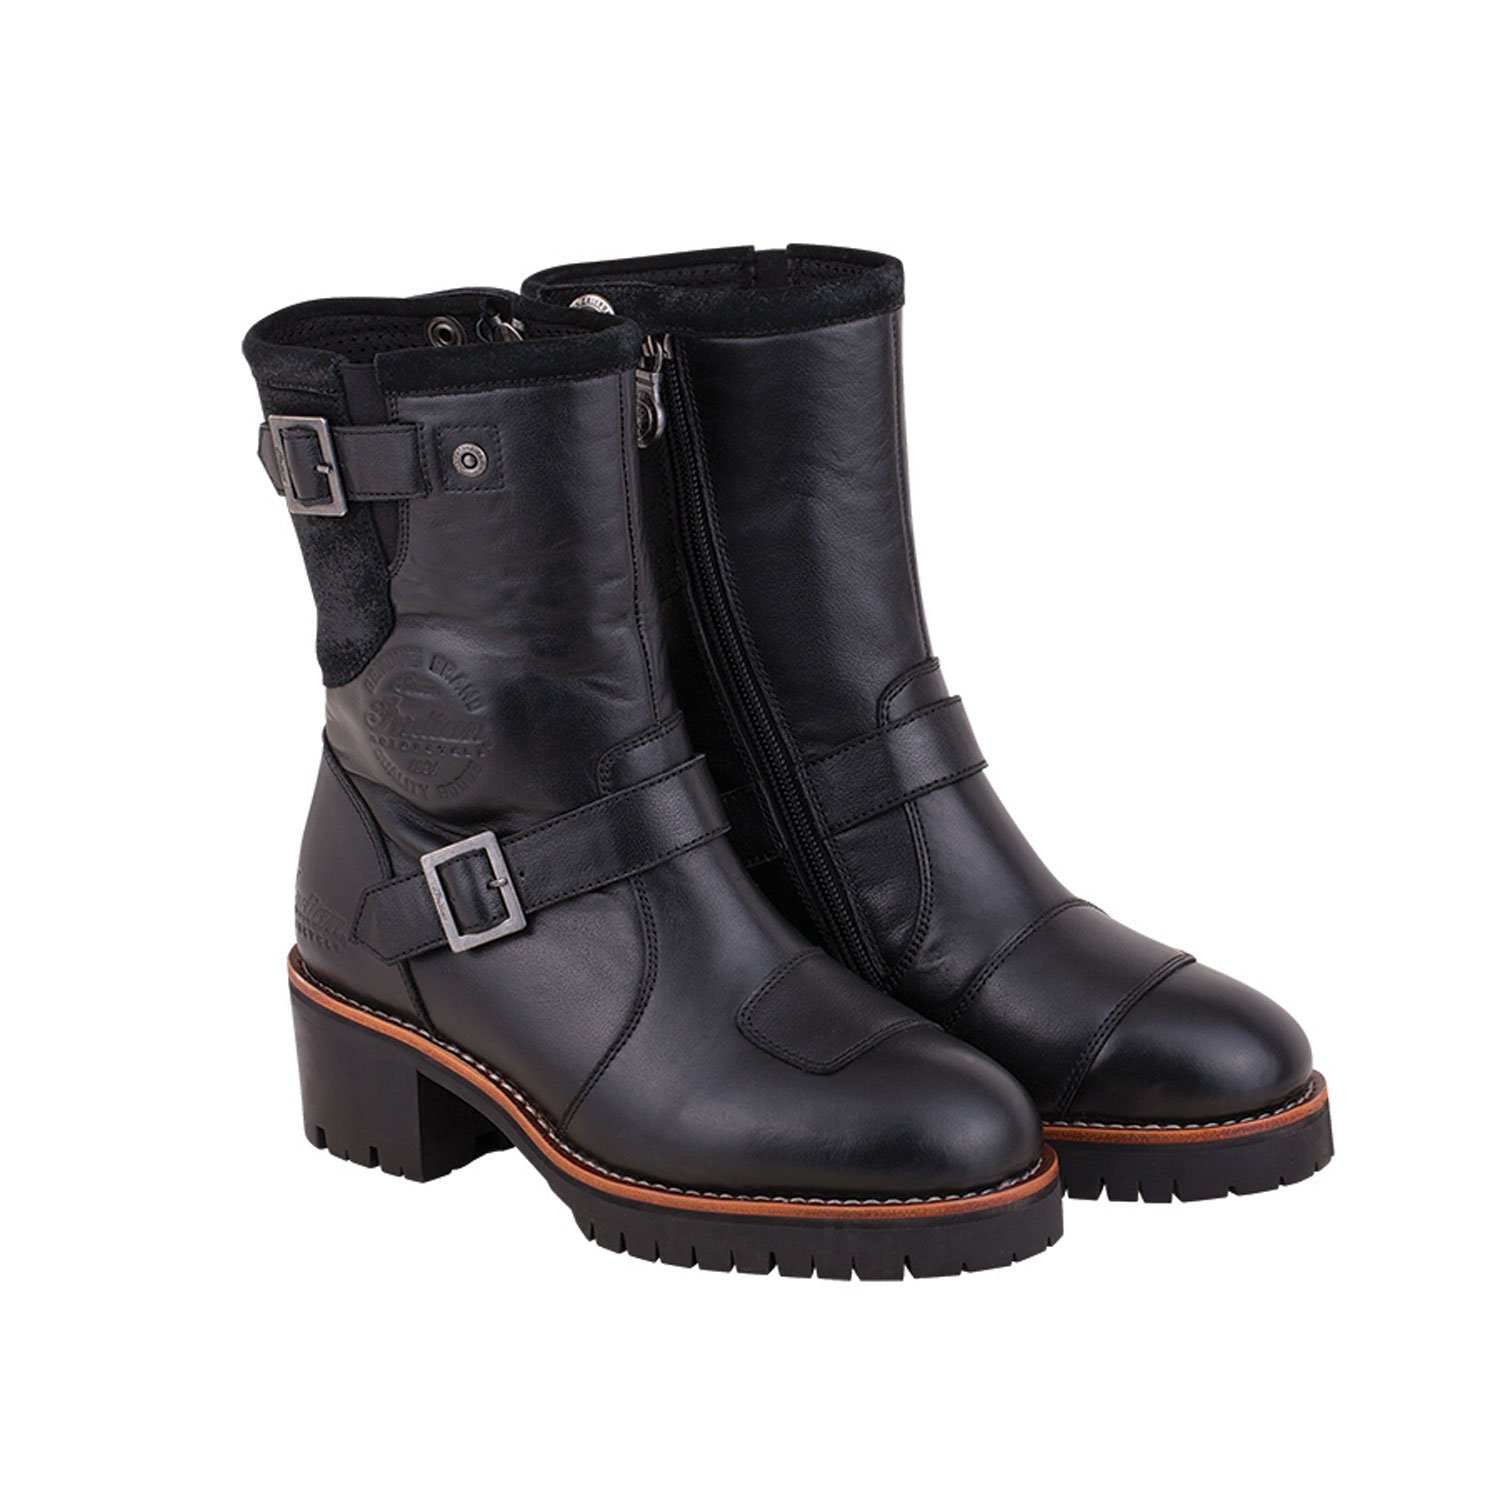 Women's Leather Engineer Riding Boot, Black